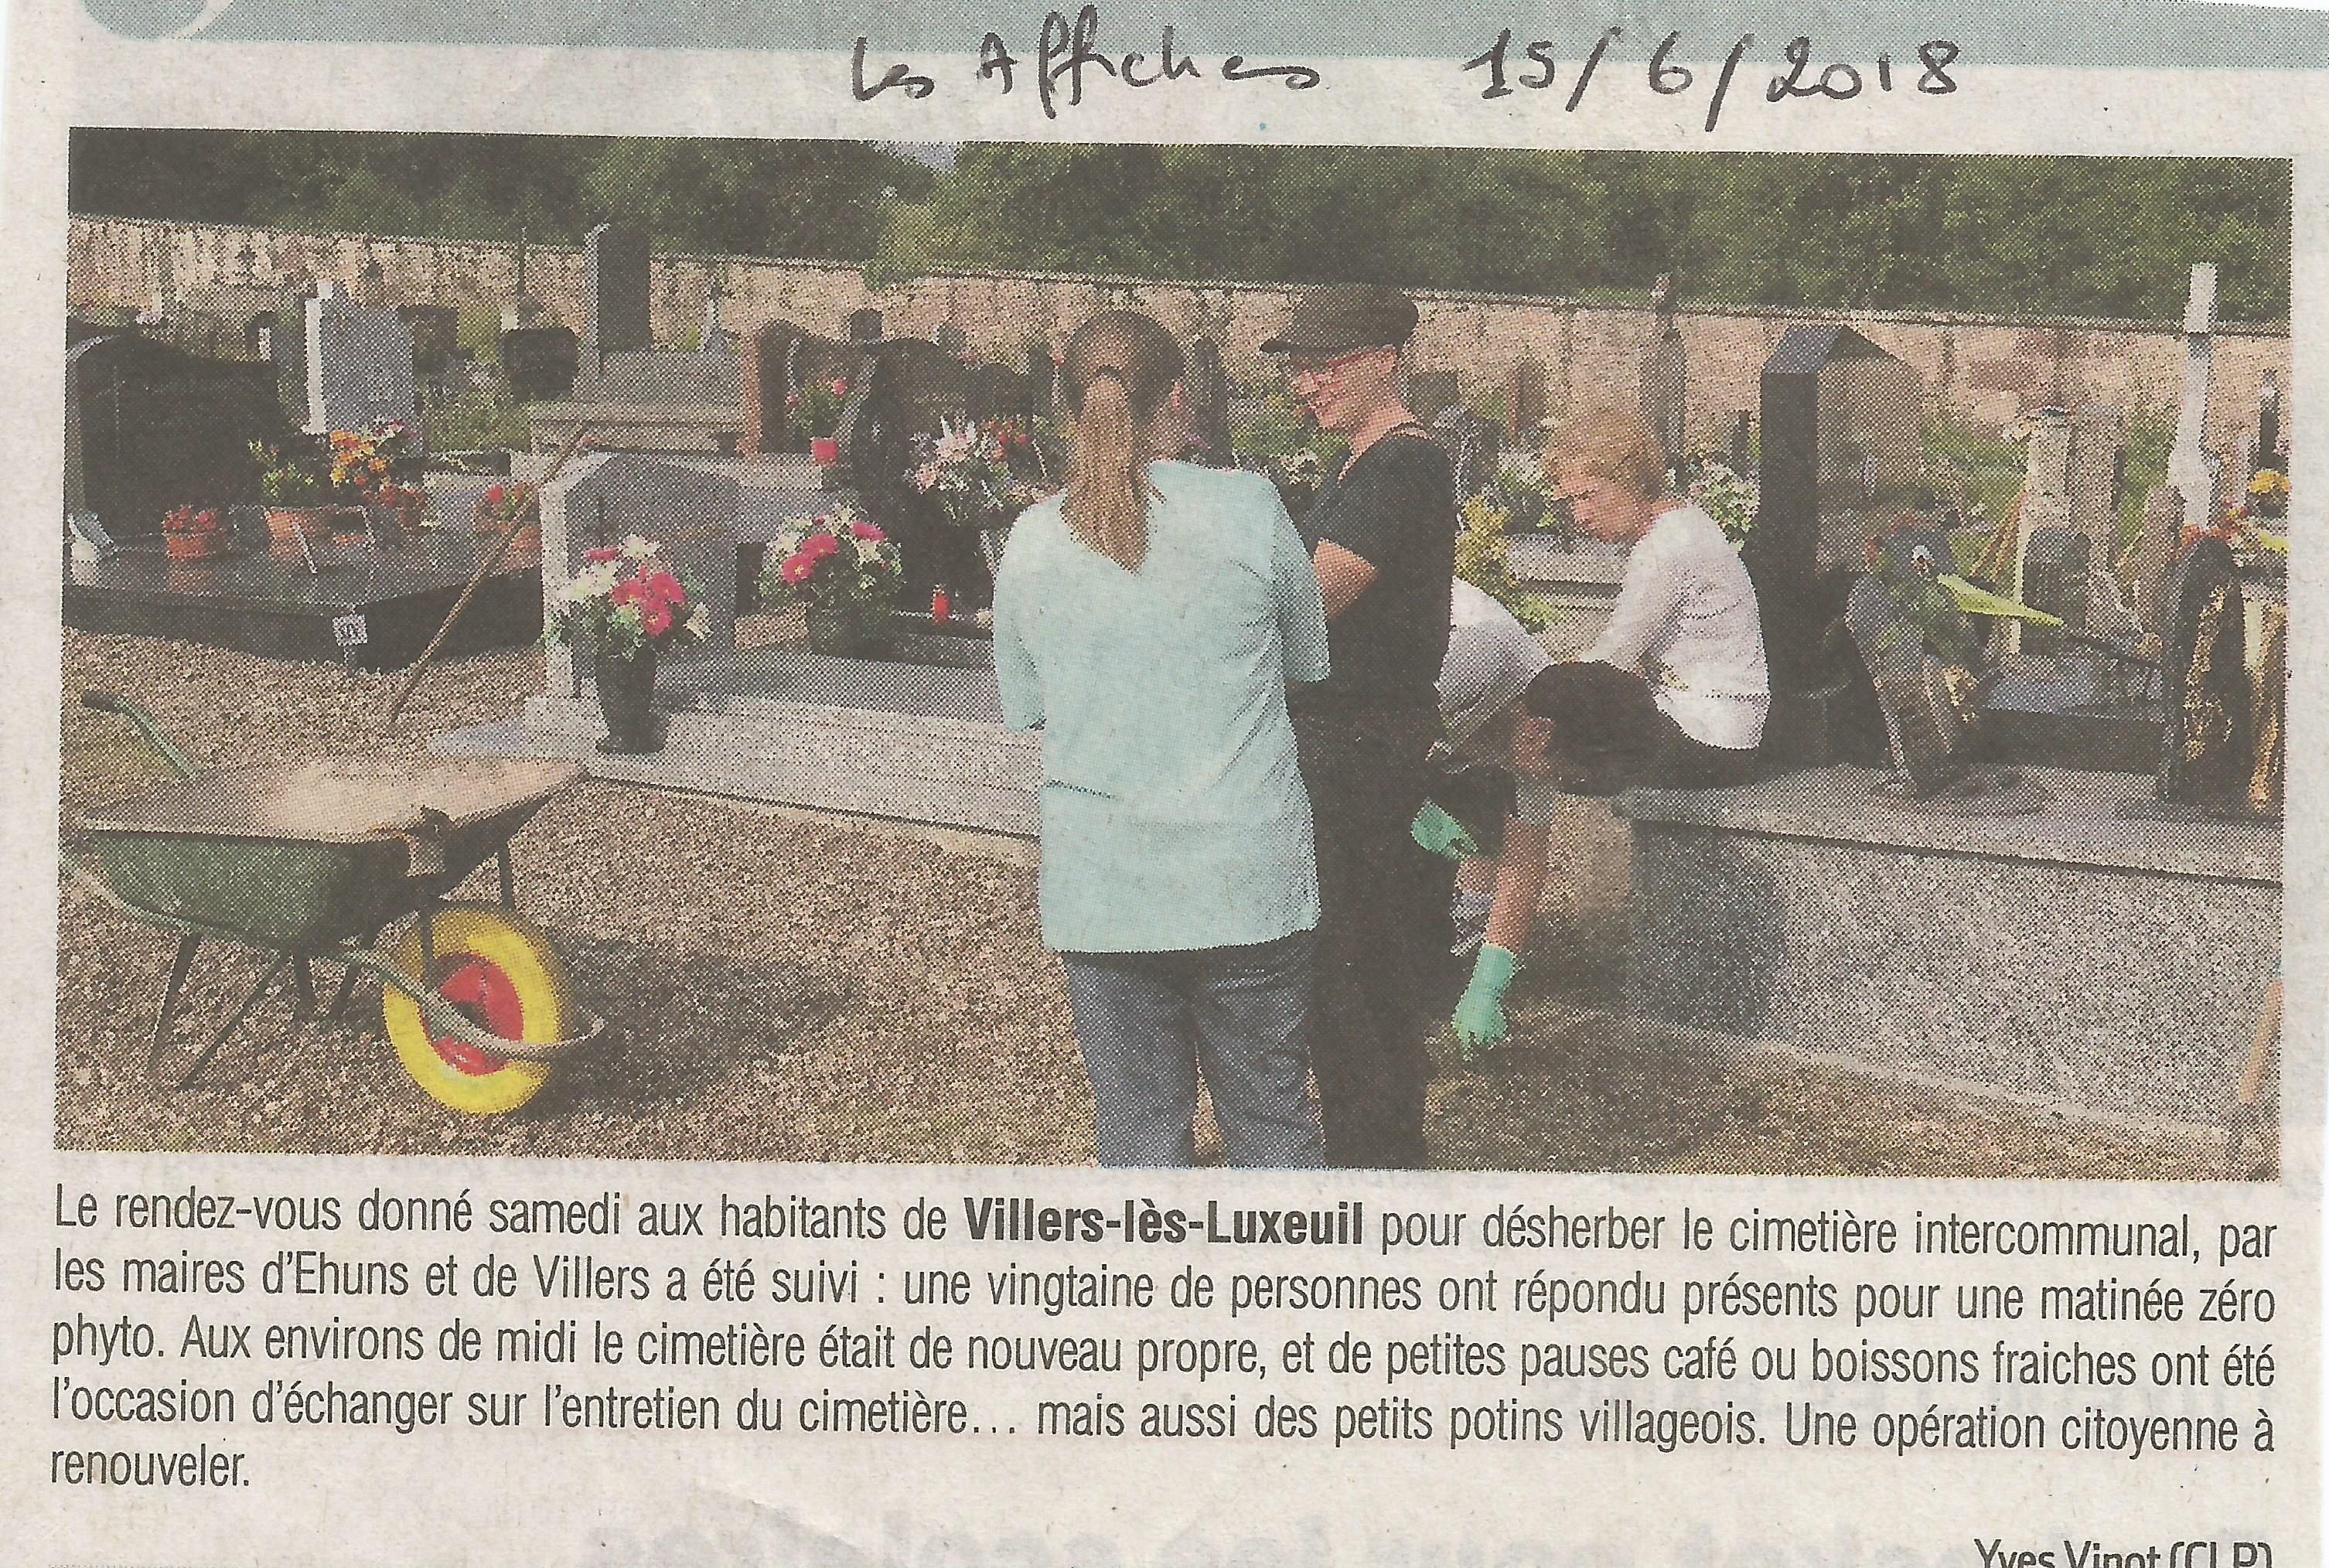 https://www.villers-les-luxeuil.com/projets/villers/files/images/2018_Mairie/Presse/2018_06_15.jpg